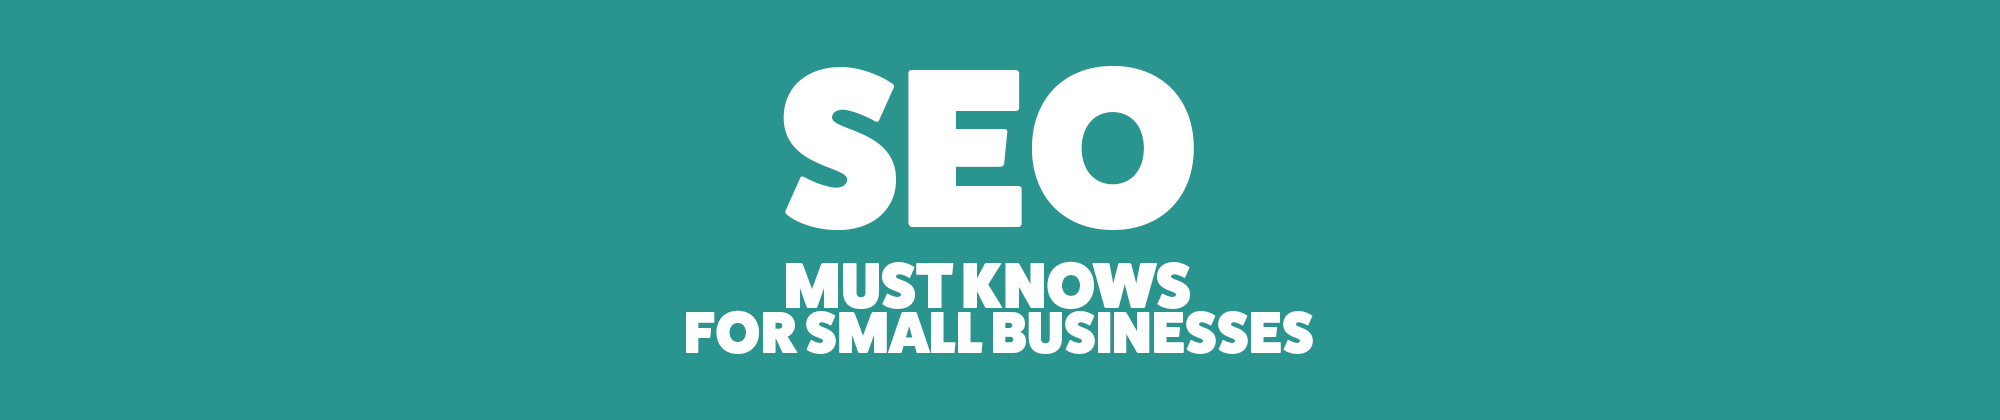 SEO Must knows for small businesses standout banner